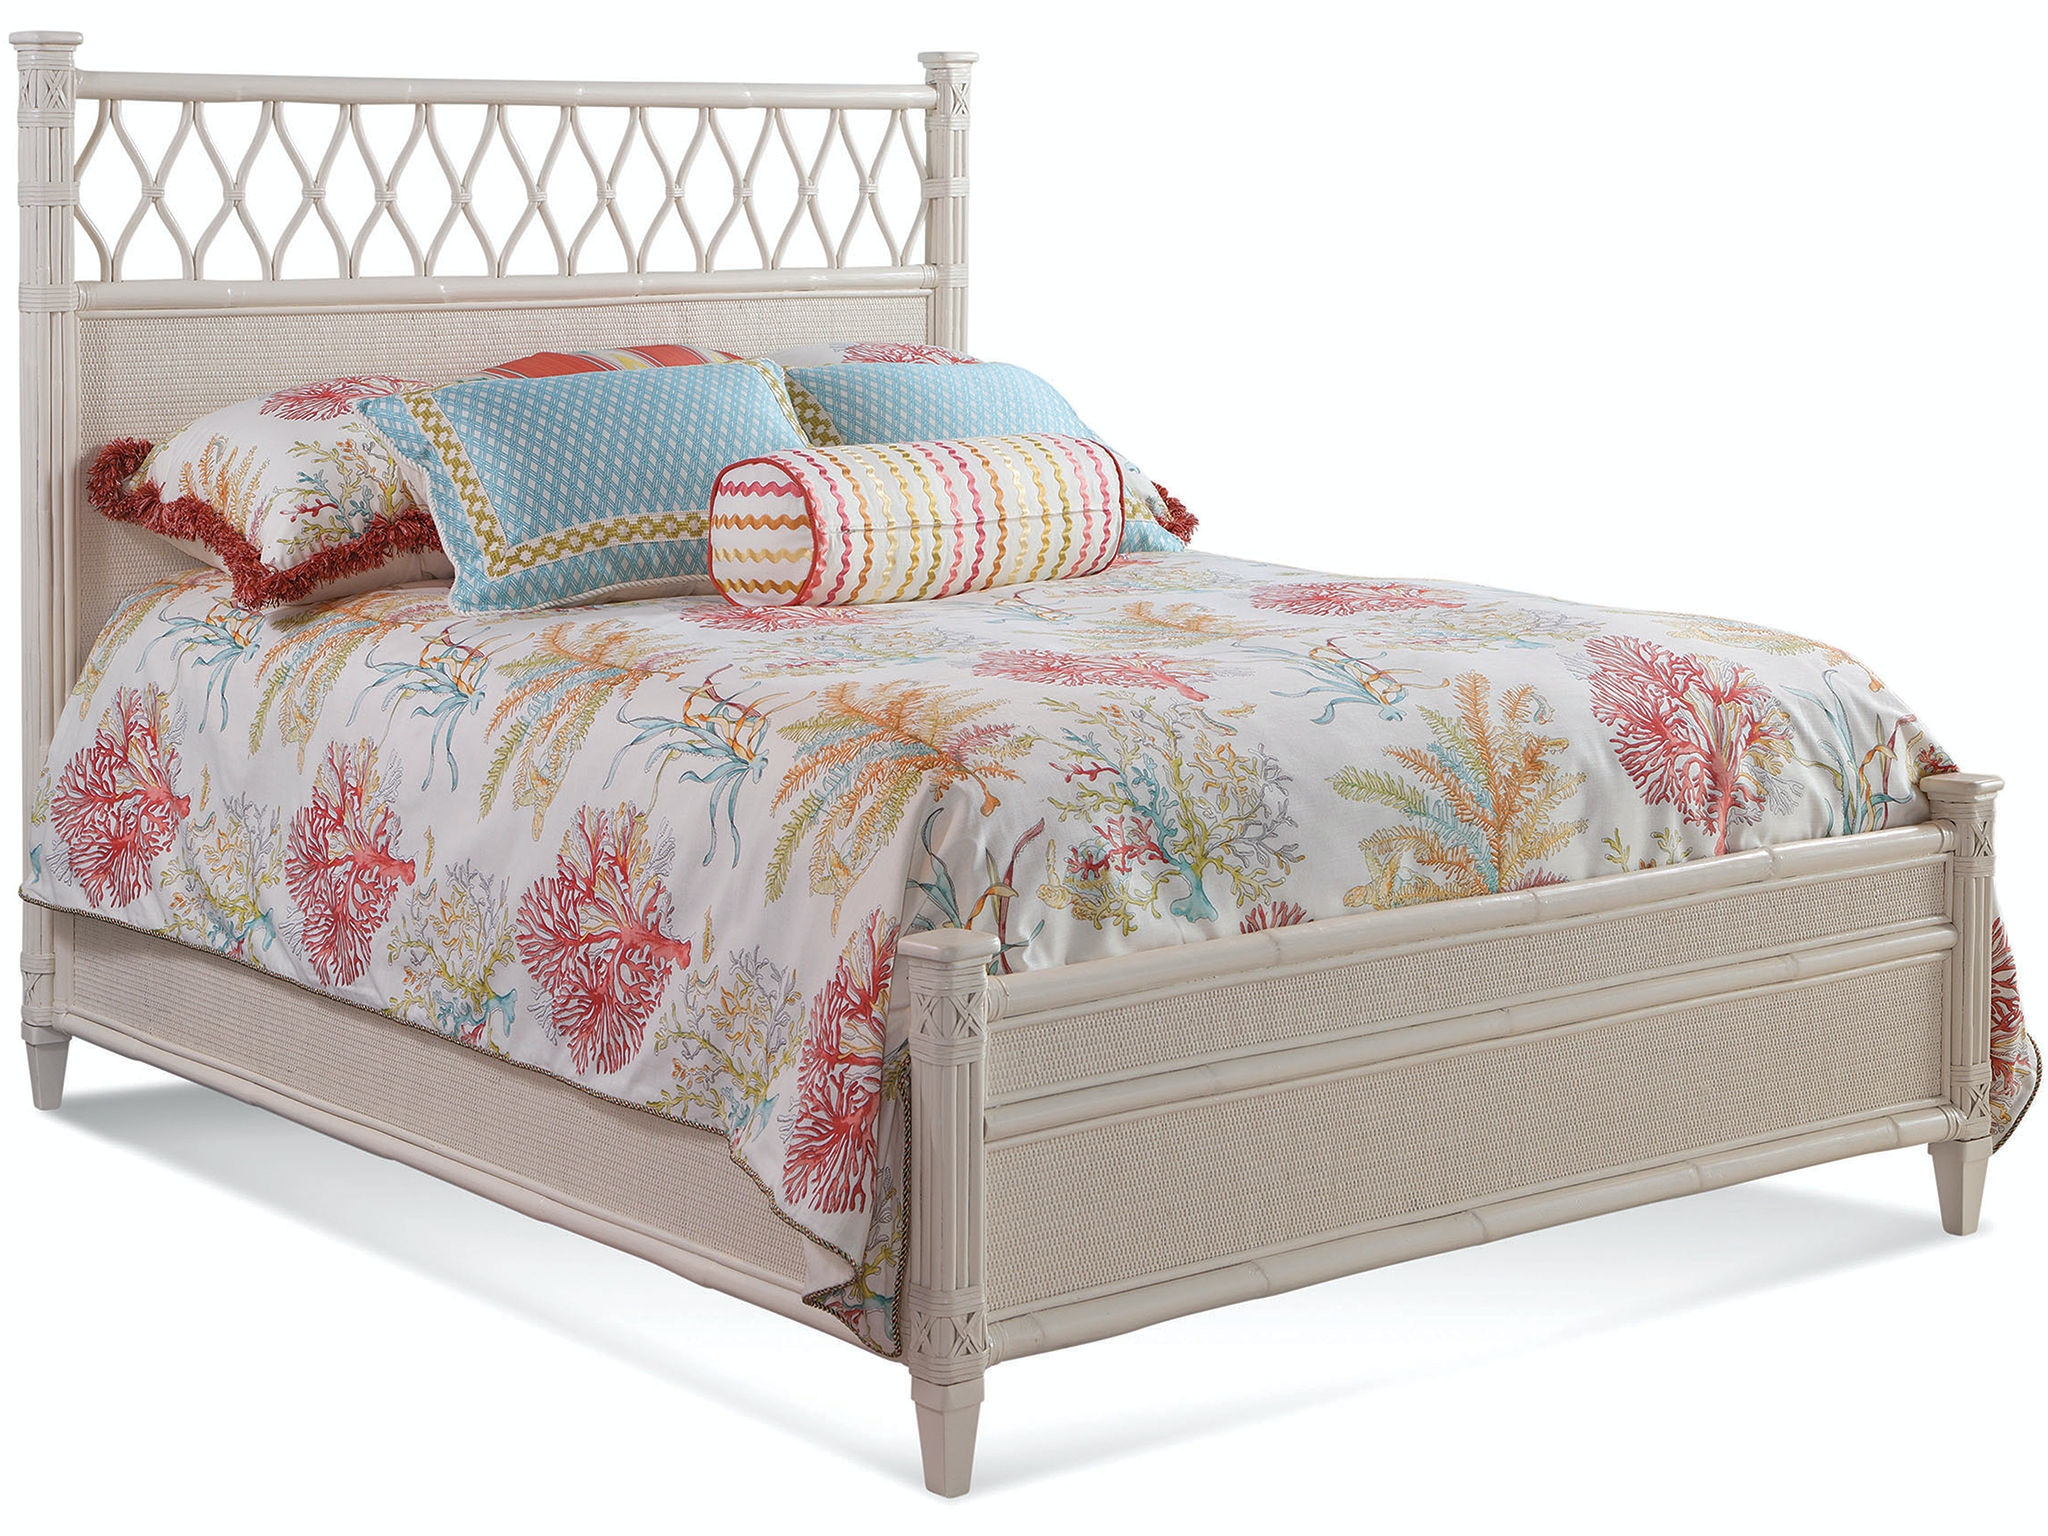 Columbia Fretwork Bed 828-FRET-BED